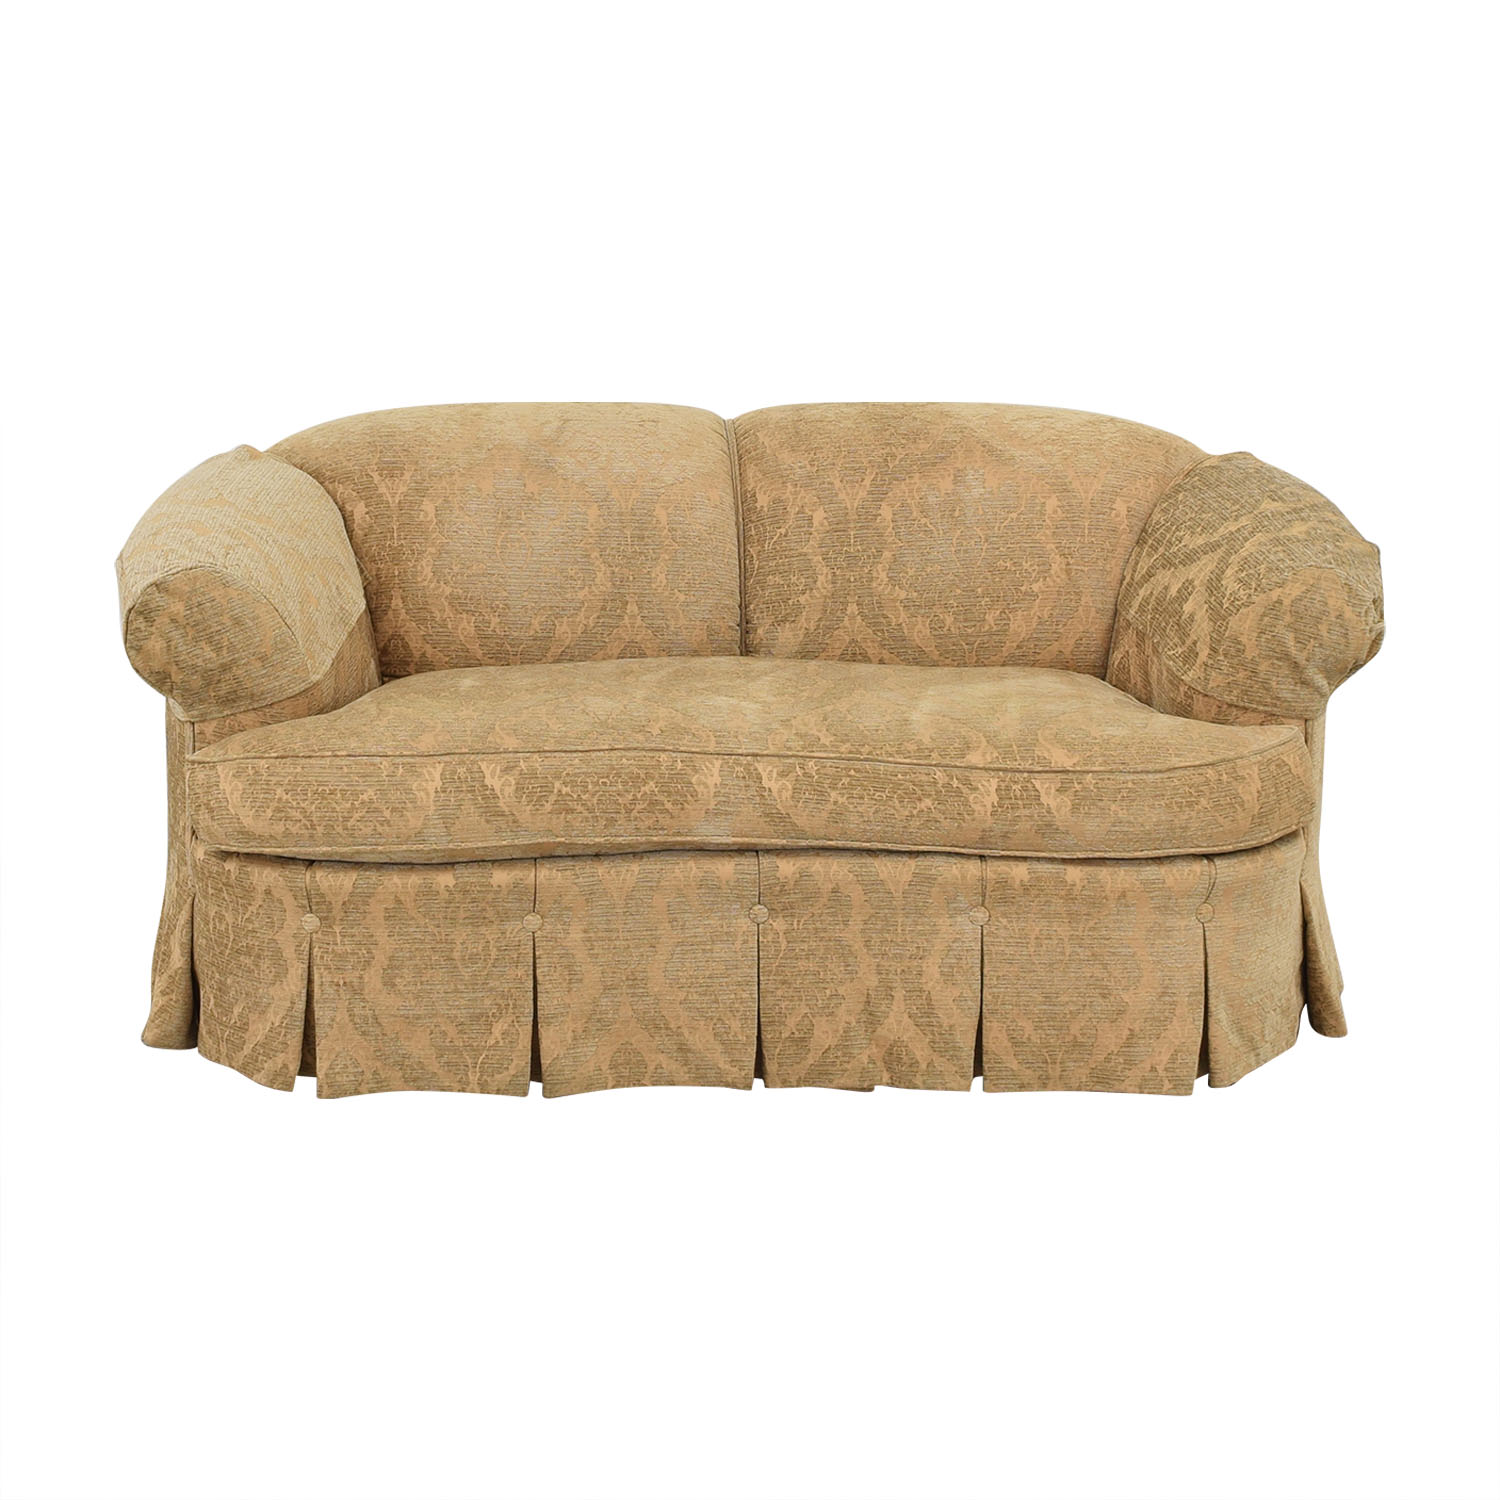 Kravet Kravet Slipcovered Loveseat dimensions